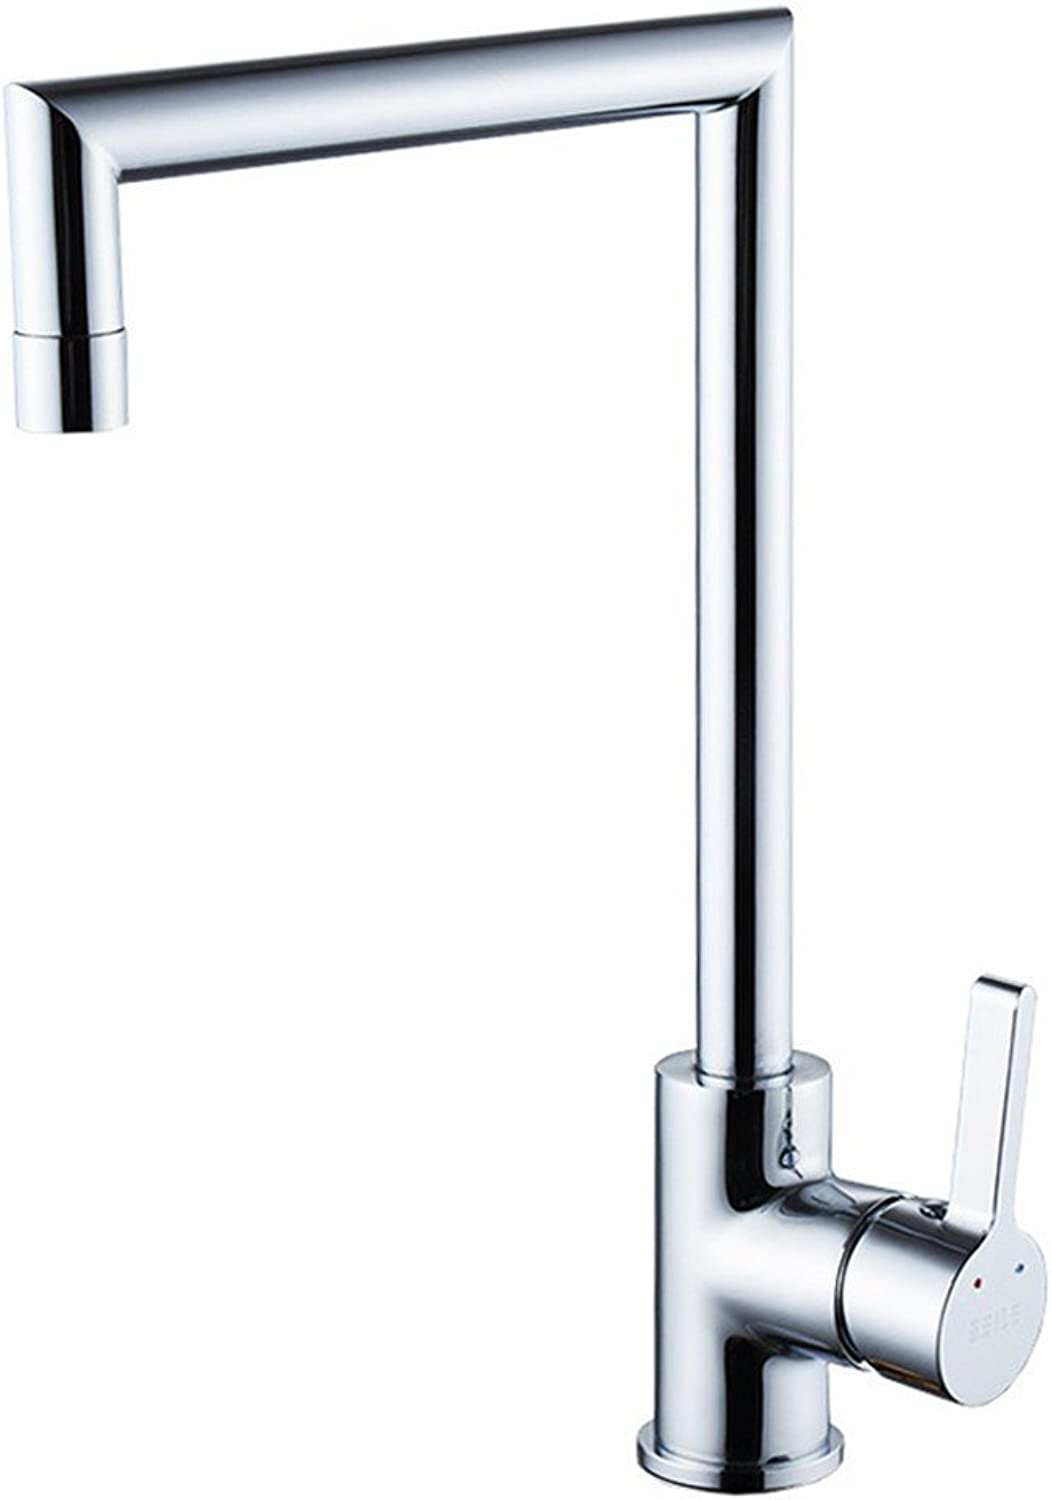 Decorry Kitchen Faucet Cold and Hot Single Hole Wash Basin Faucet